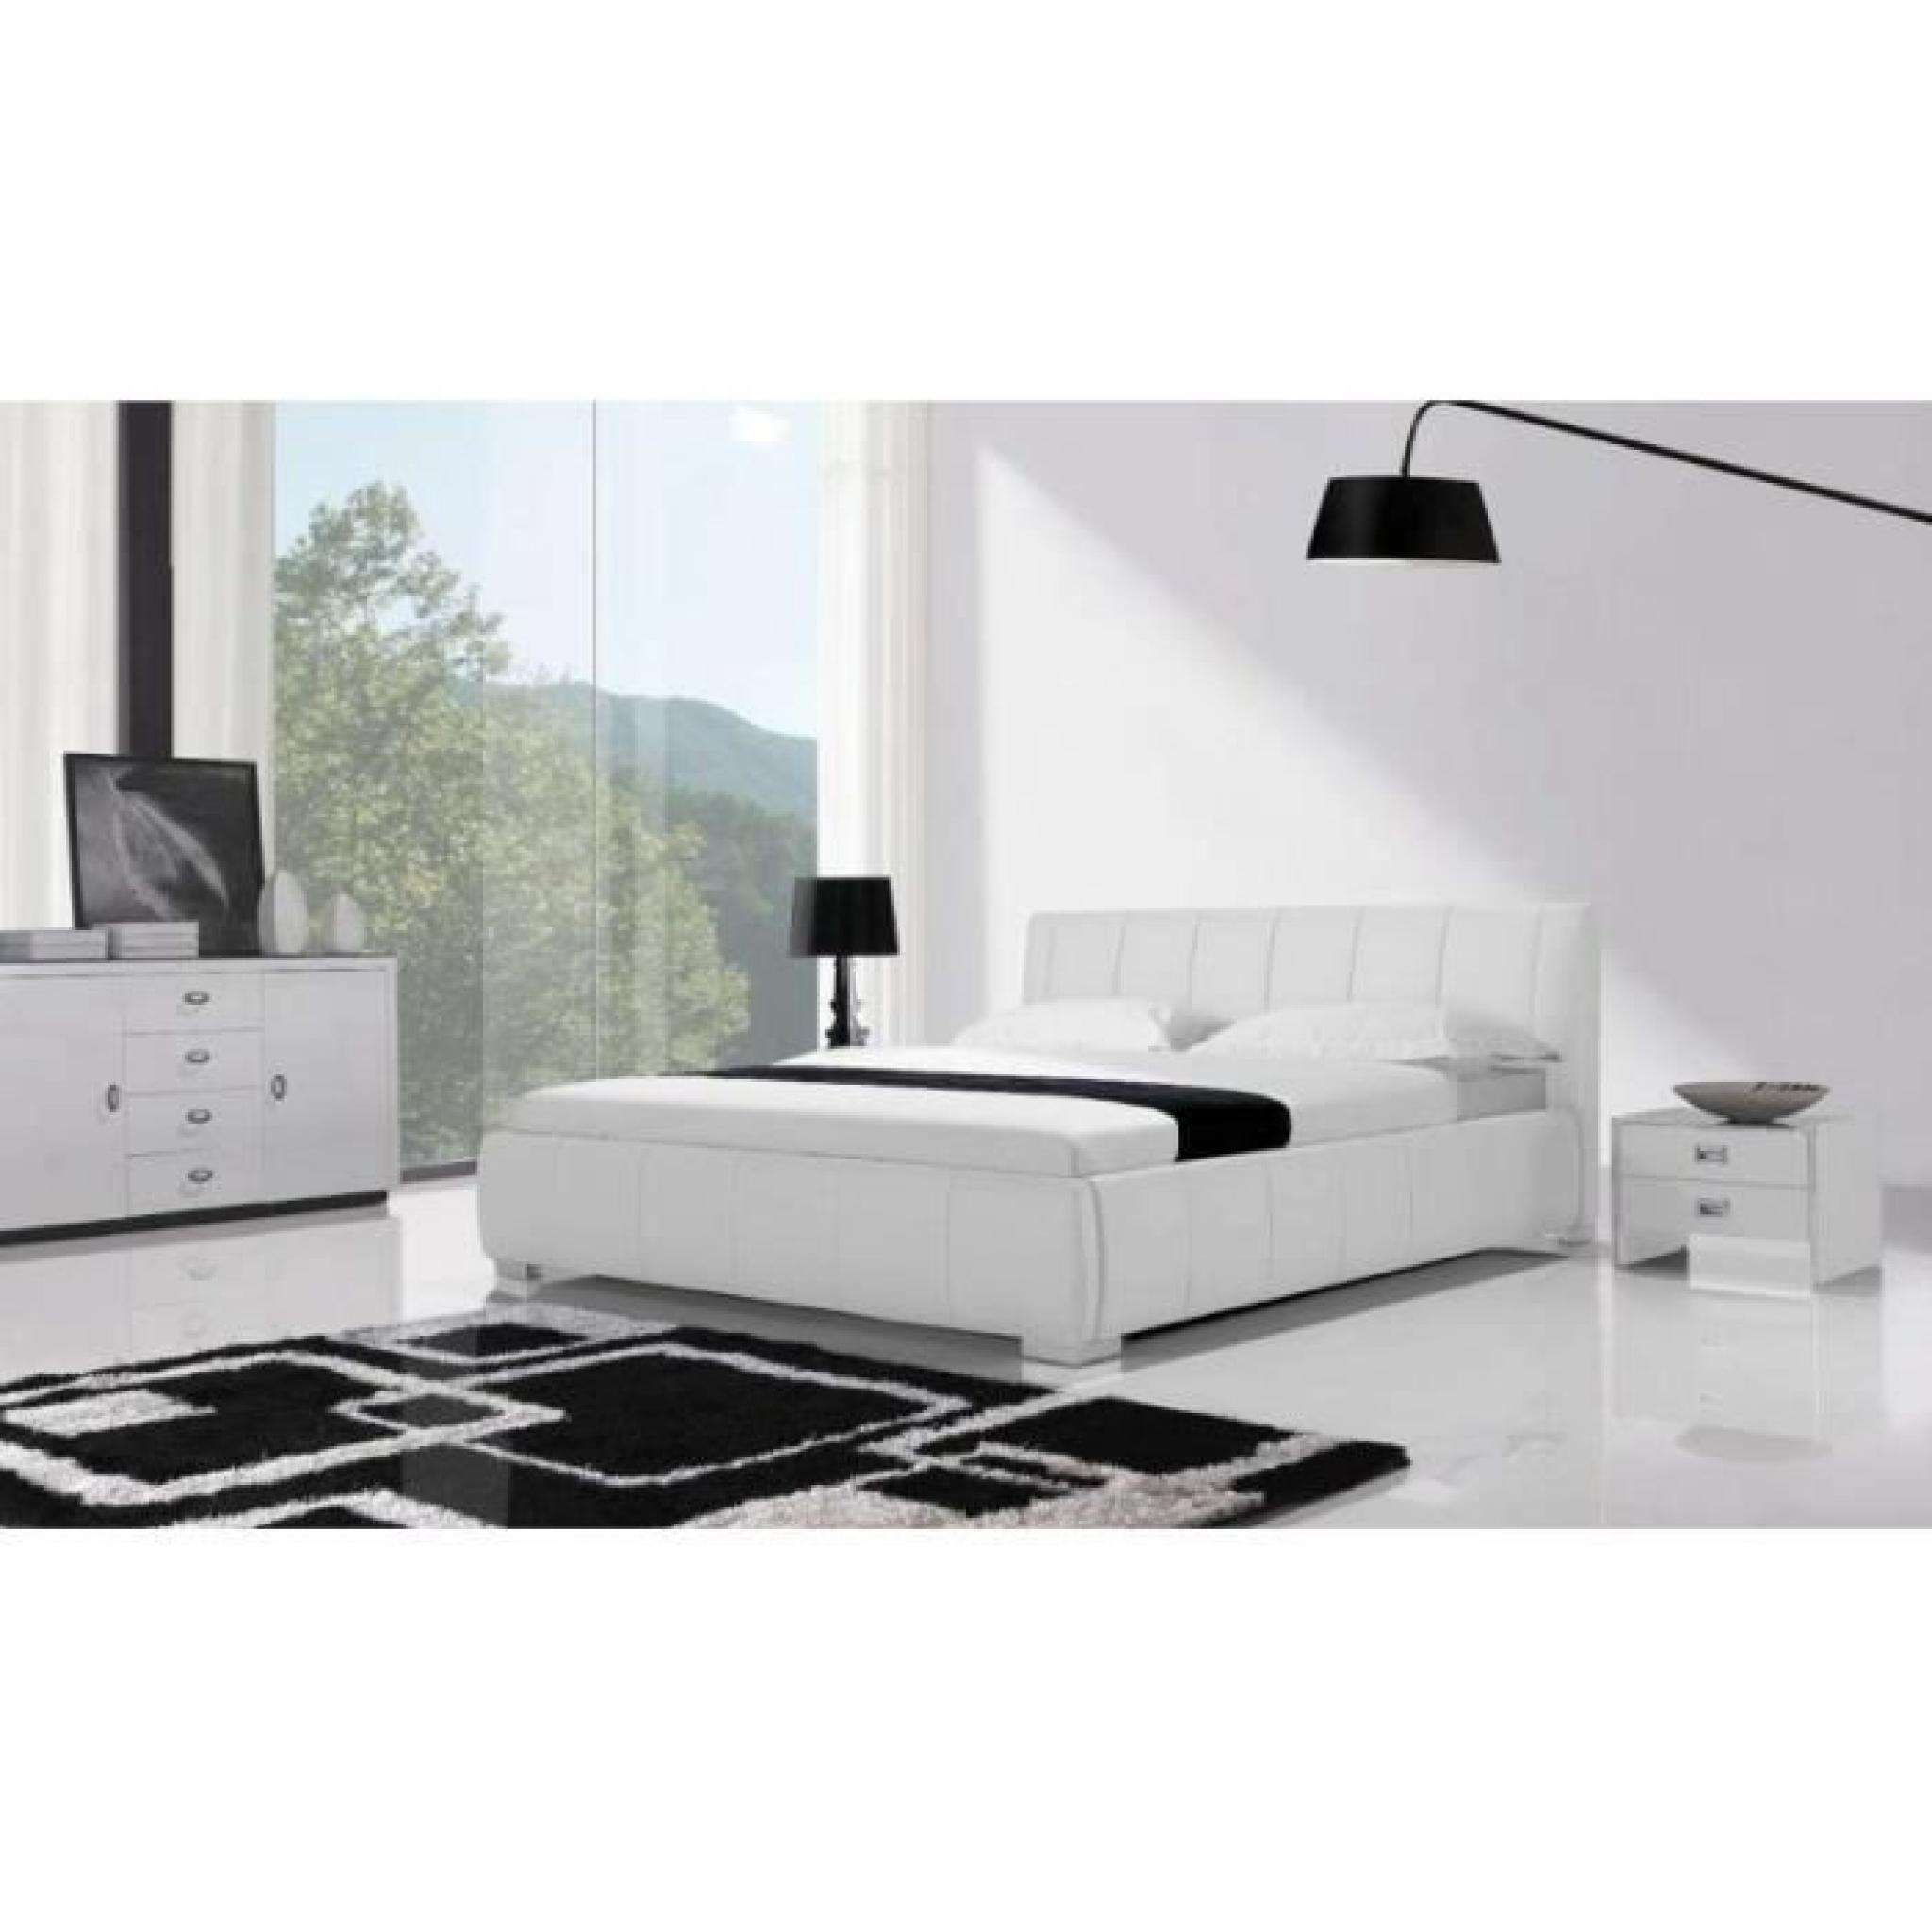 lit en cuir pas cher maison design. Black Bedroom Furniture Sets. Home Design Ideas